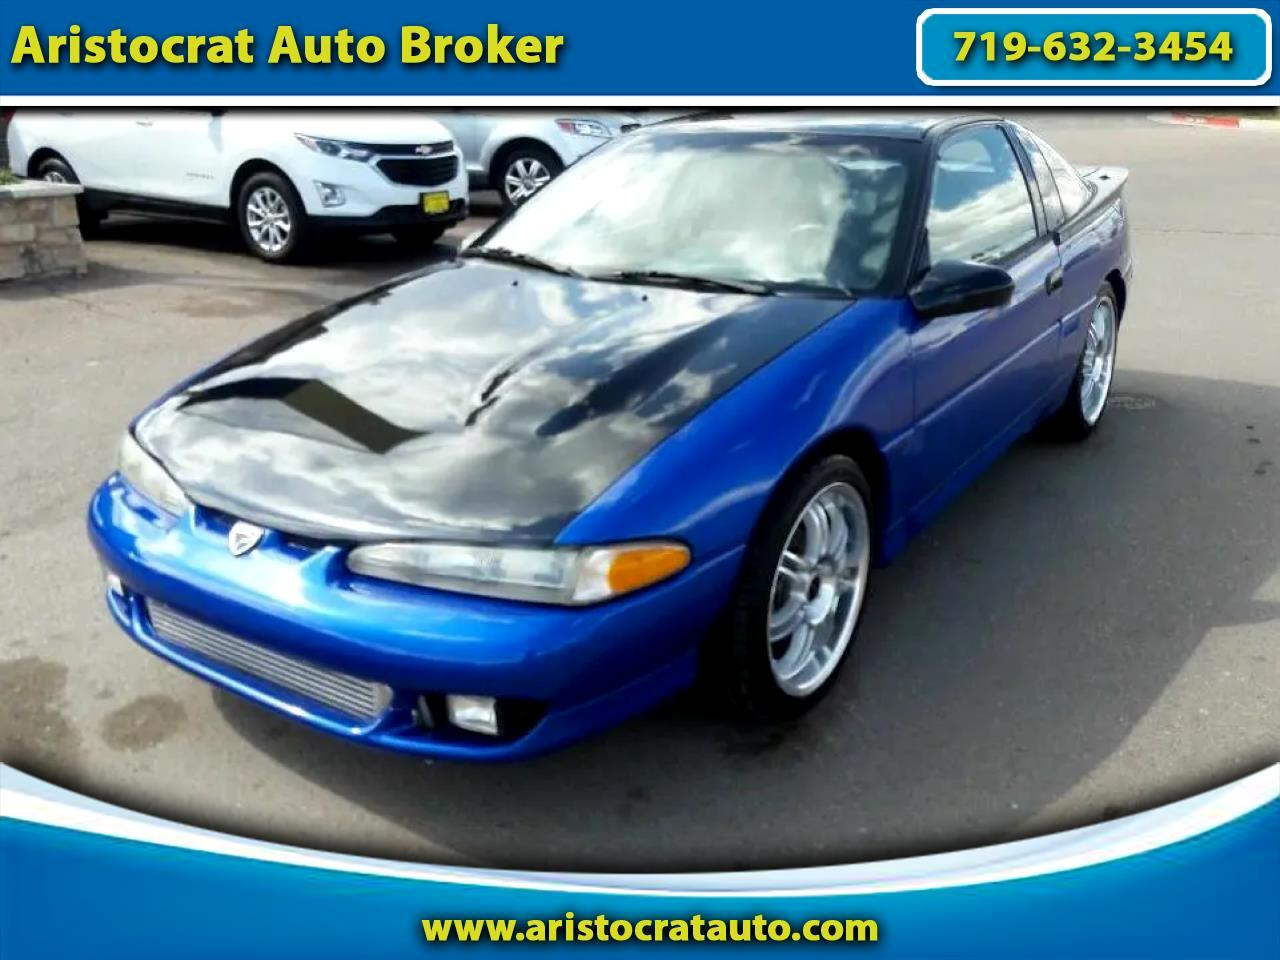 Eagle Talon 2dr Coupe TSi Turbo AWD 1992